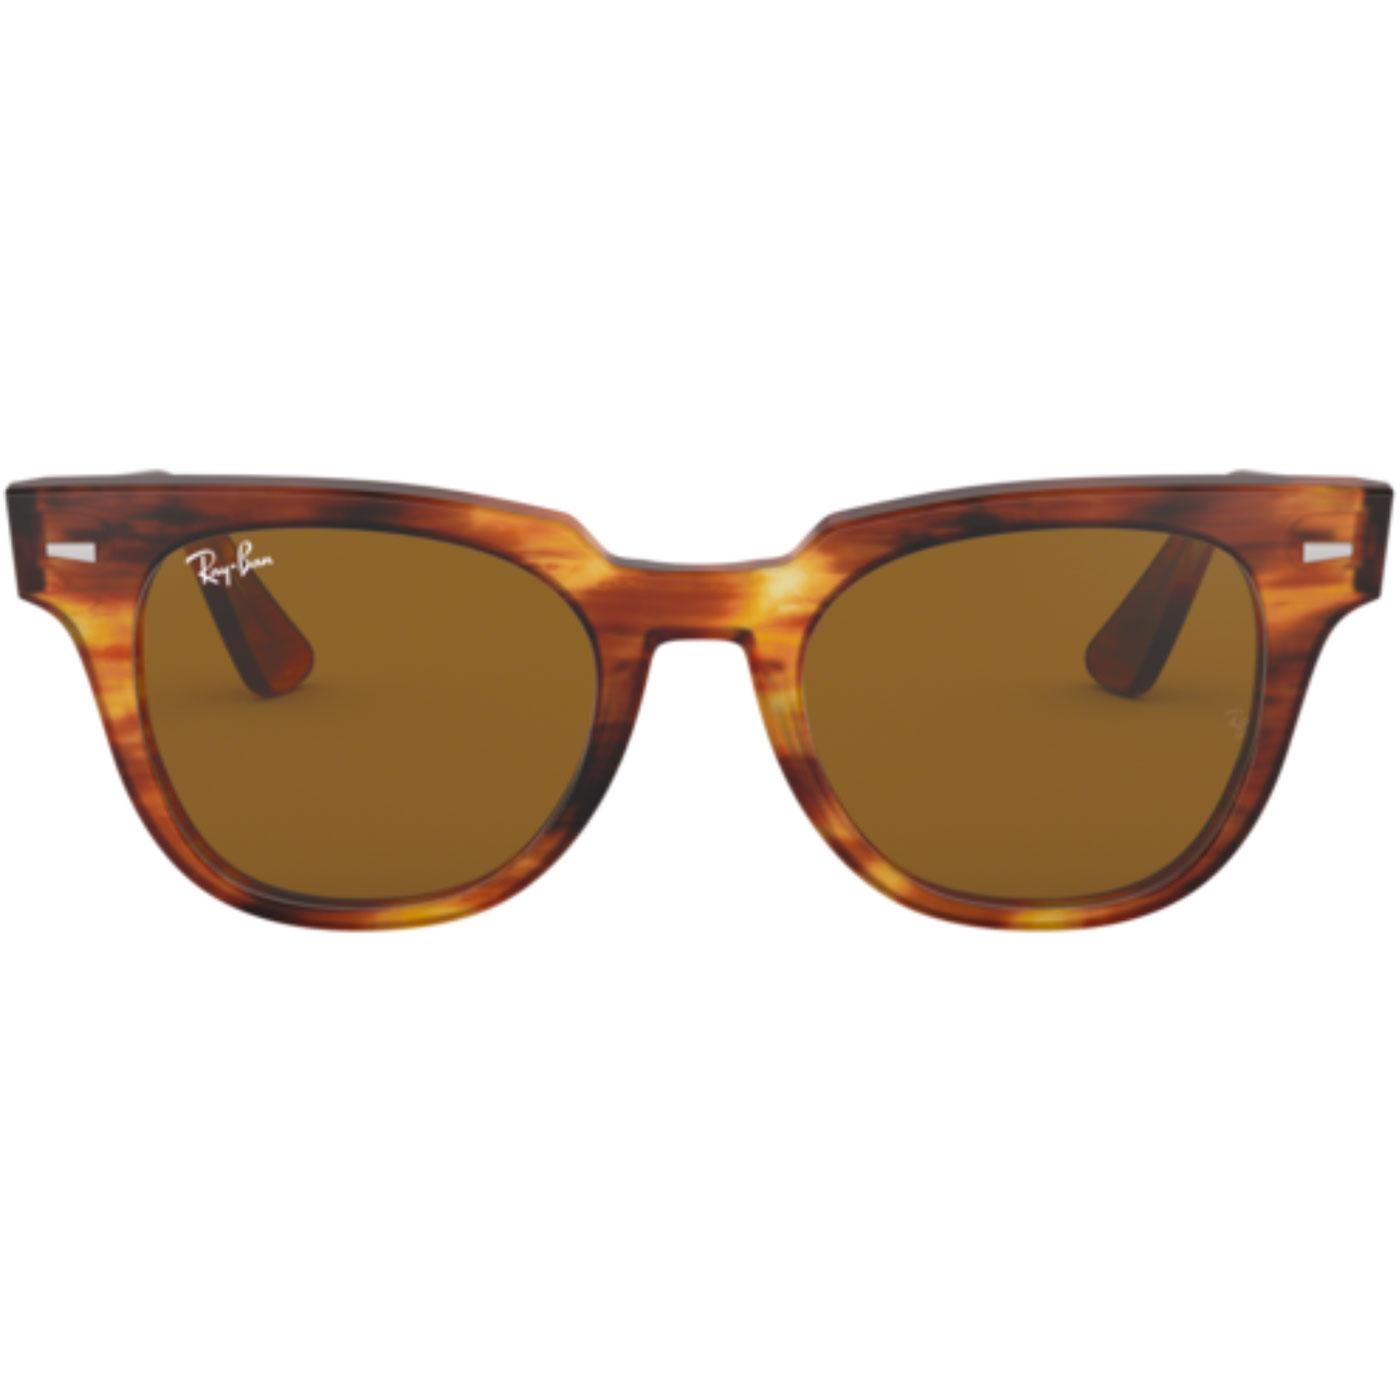 e7a5ae995d5 RAY-BAN  Meteor  Retro Wayfarer Sunglasses in Havana Brown